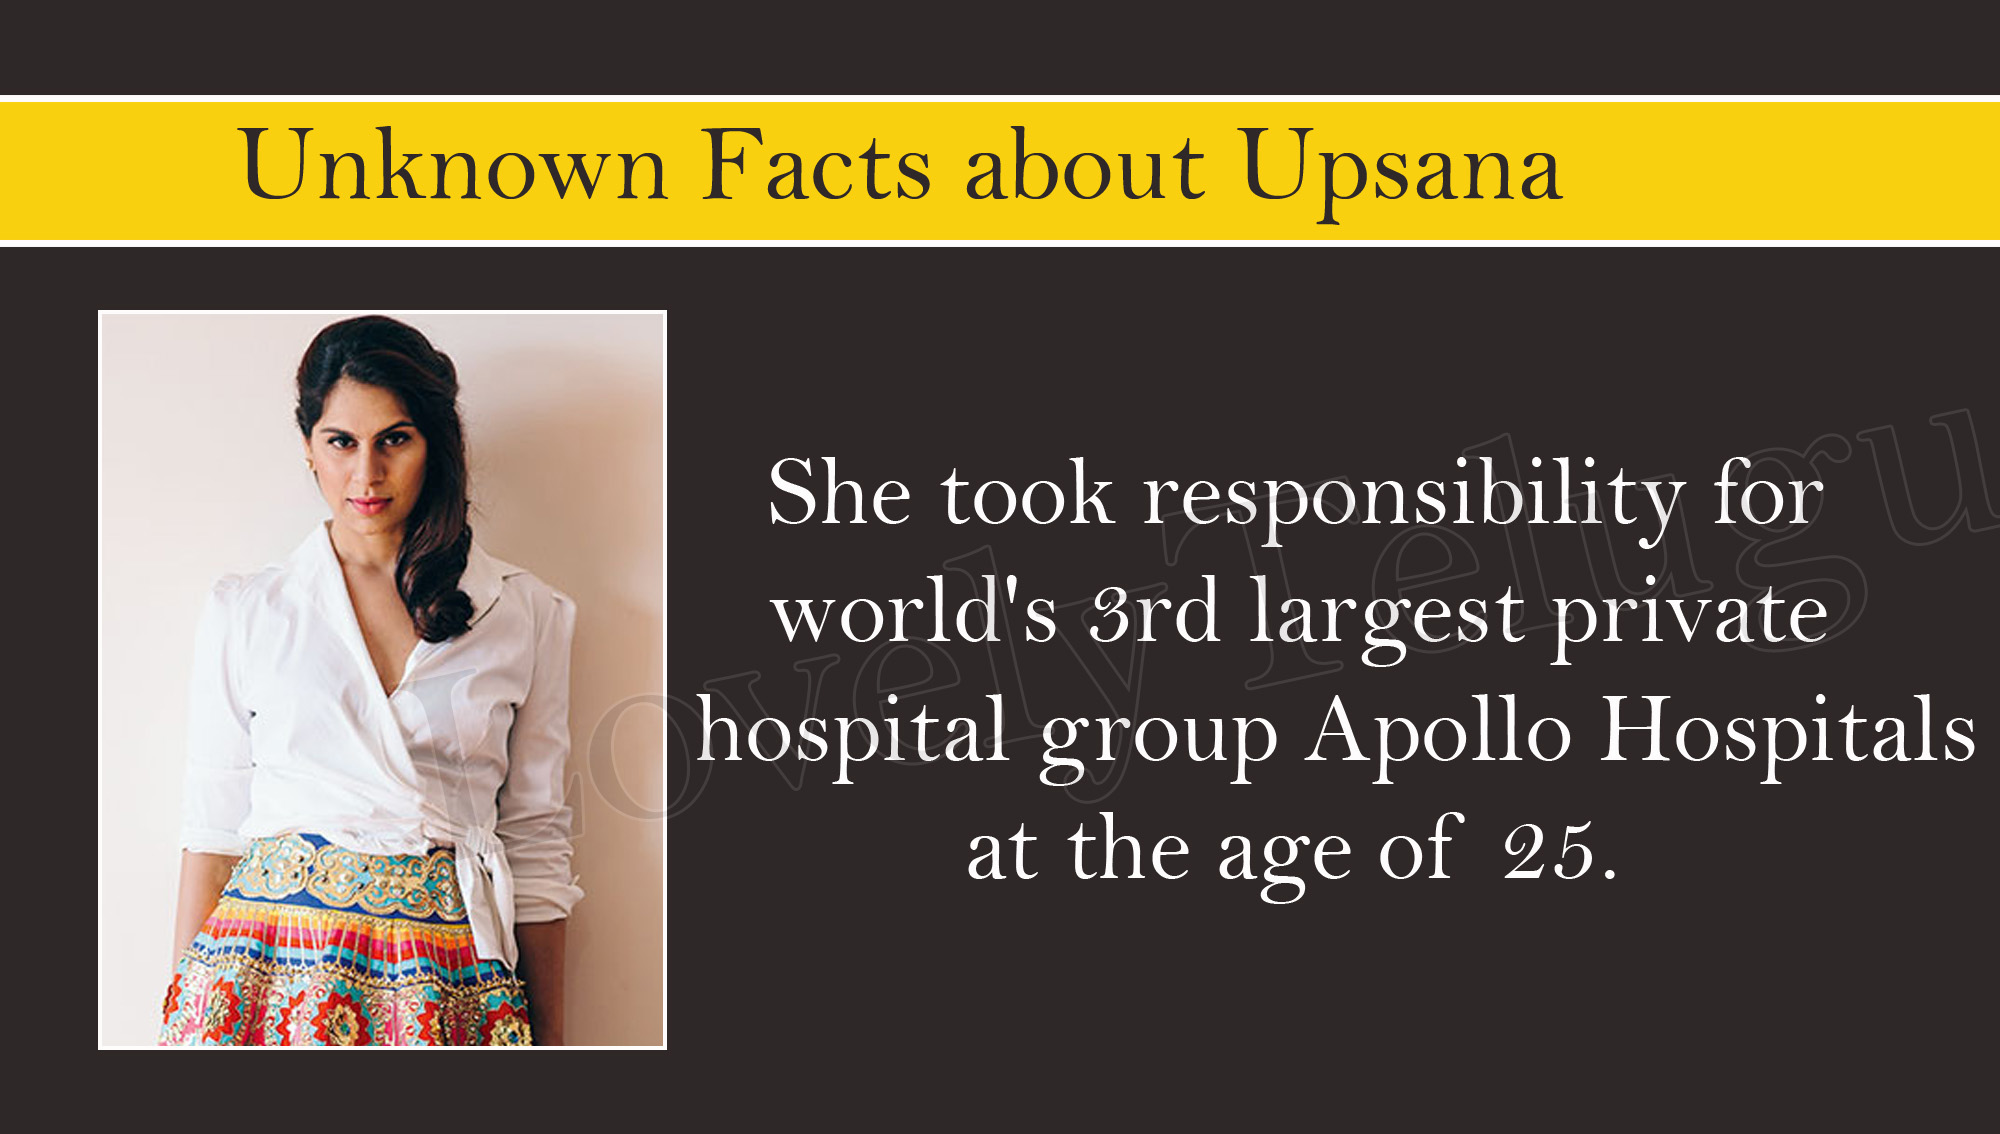 She took responsibility of world's 3rd largest private hospital group Apollo Hospitals at age of 25.